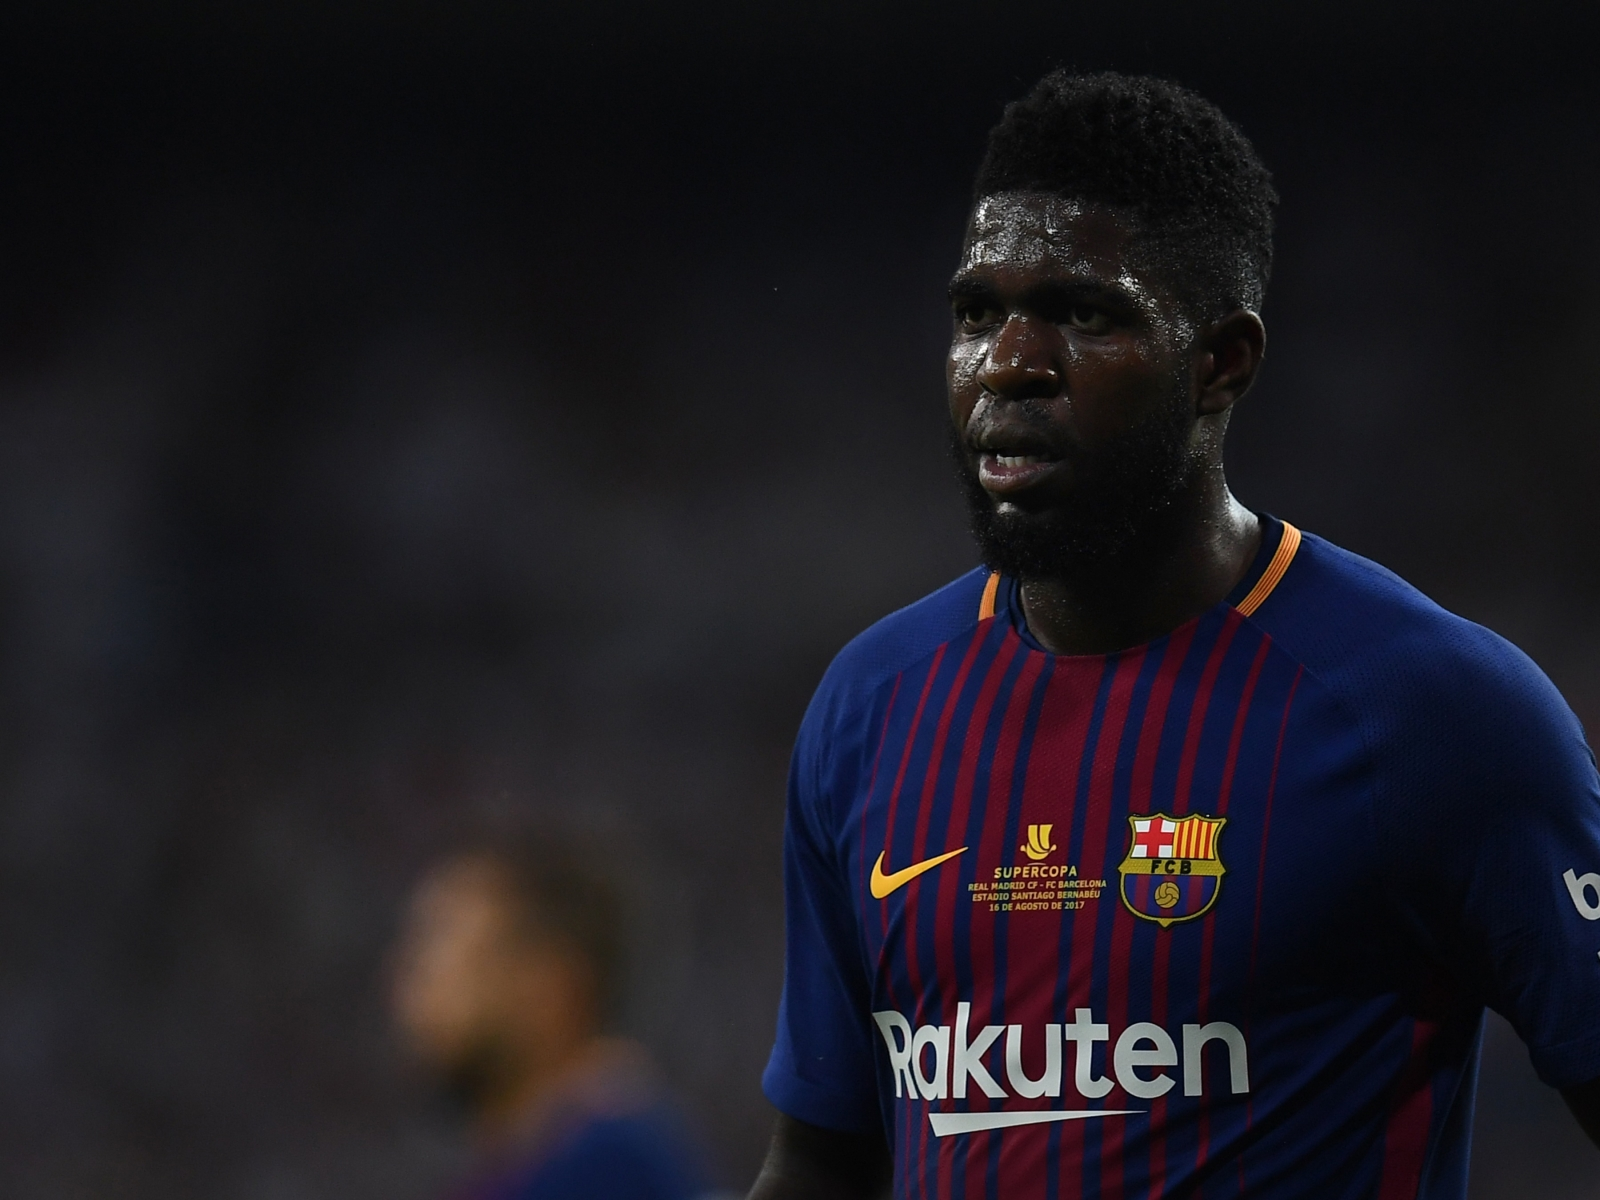 Man City to match Umtiti buyout clause